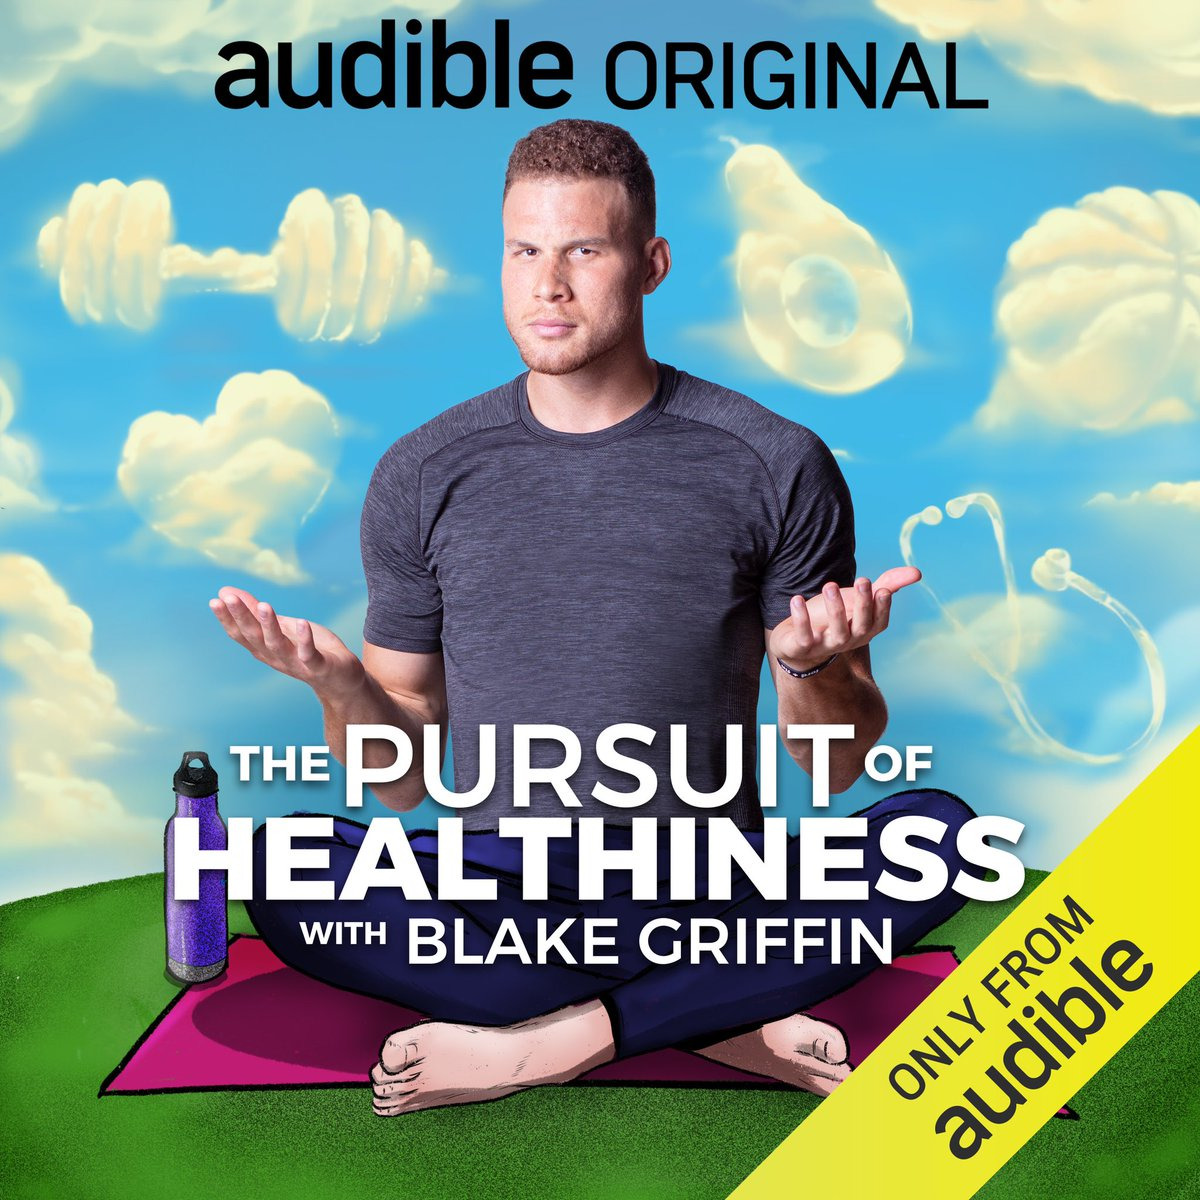 'The Pursuit of Healthiness' coming to @audible_com August 2020. I partnered with @OBB on this series to hopefully make the health and wellness landscape a little less daunting, and a lot more fun. Exercise Your Curiosity. https://t.co/Axp3SOfglF